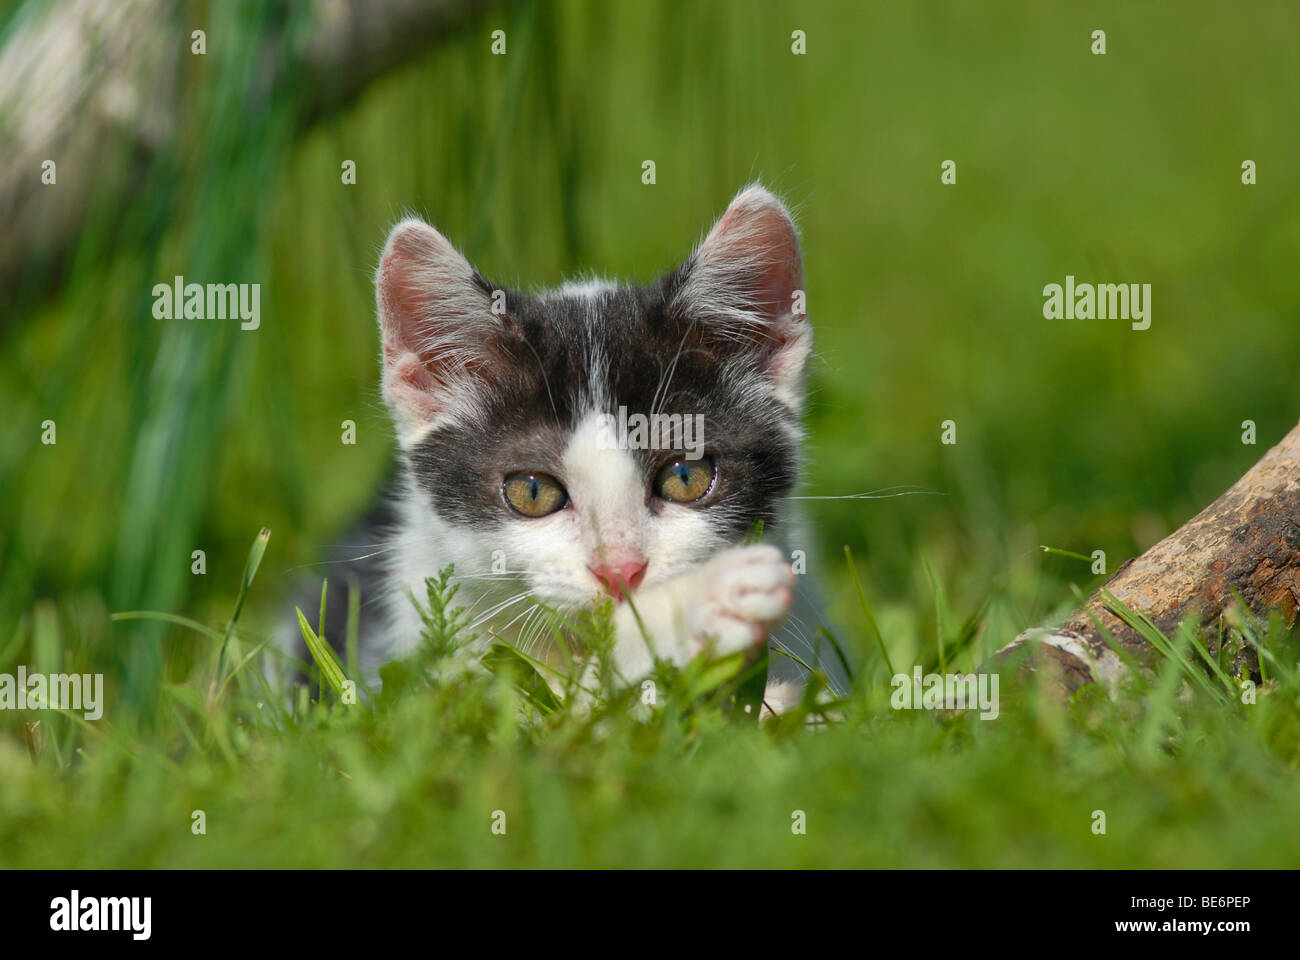 Domestic cat, kitten lying in the grass - Stock Image